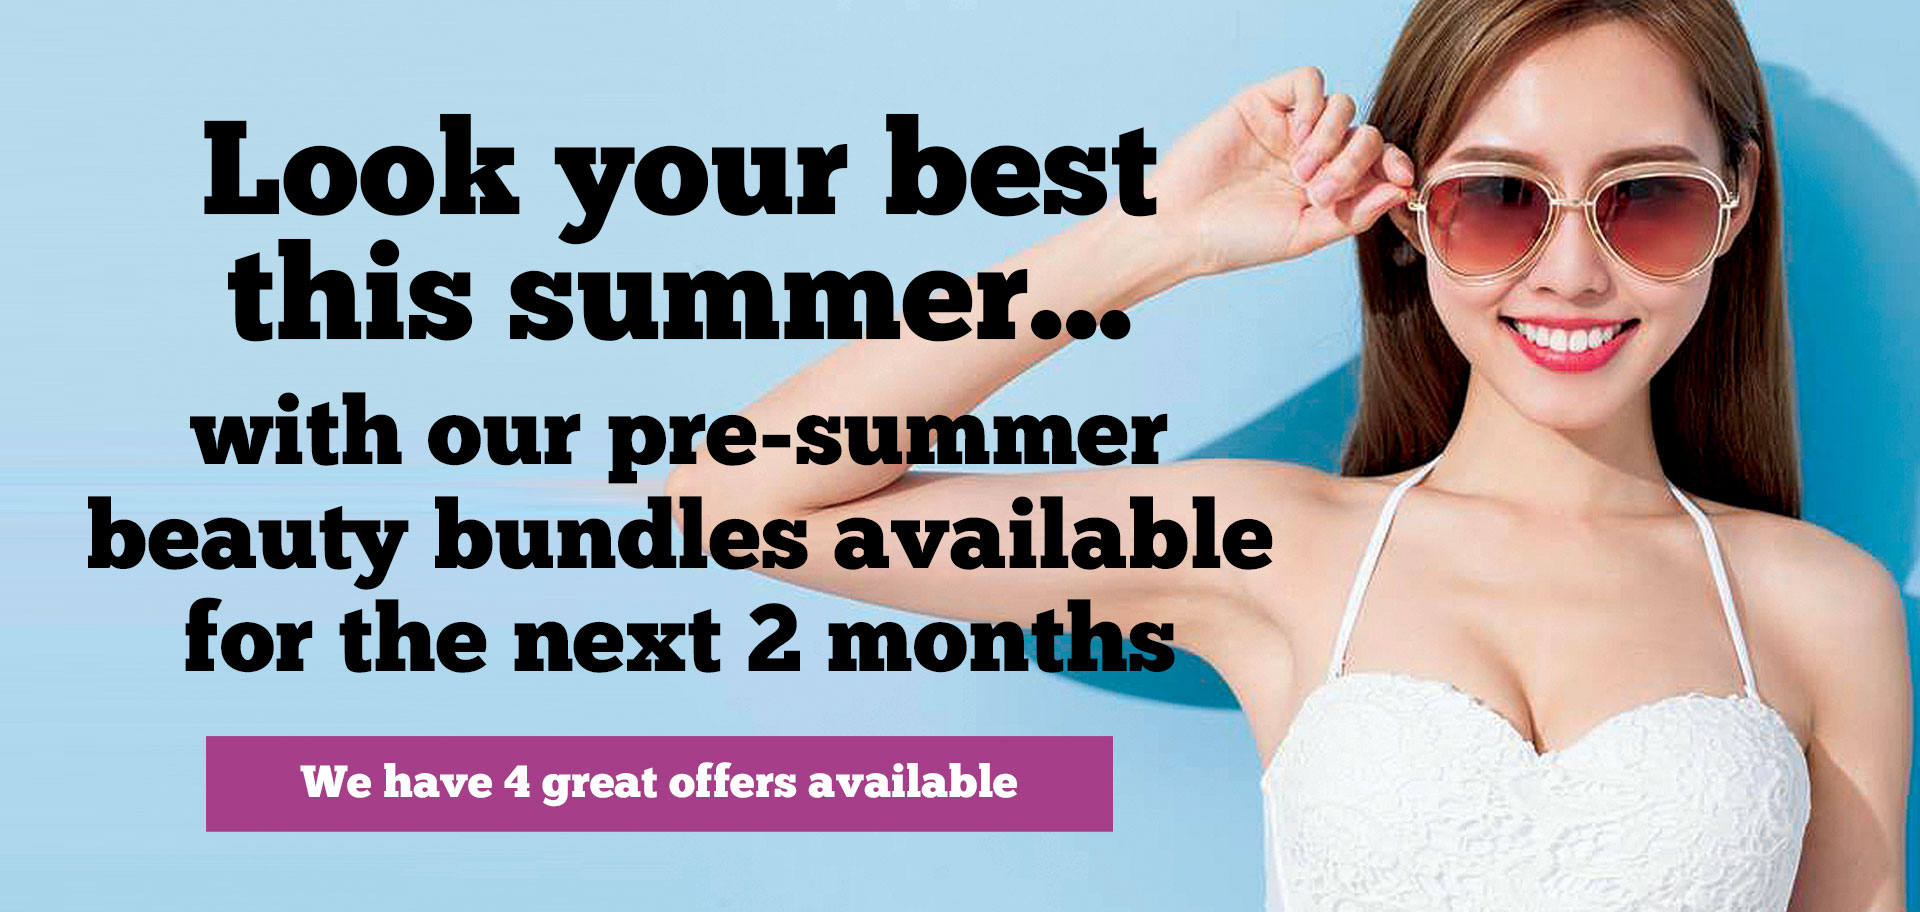 look your best this summer... with our pre-summer beauty bundles available for the next 2 months